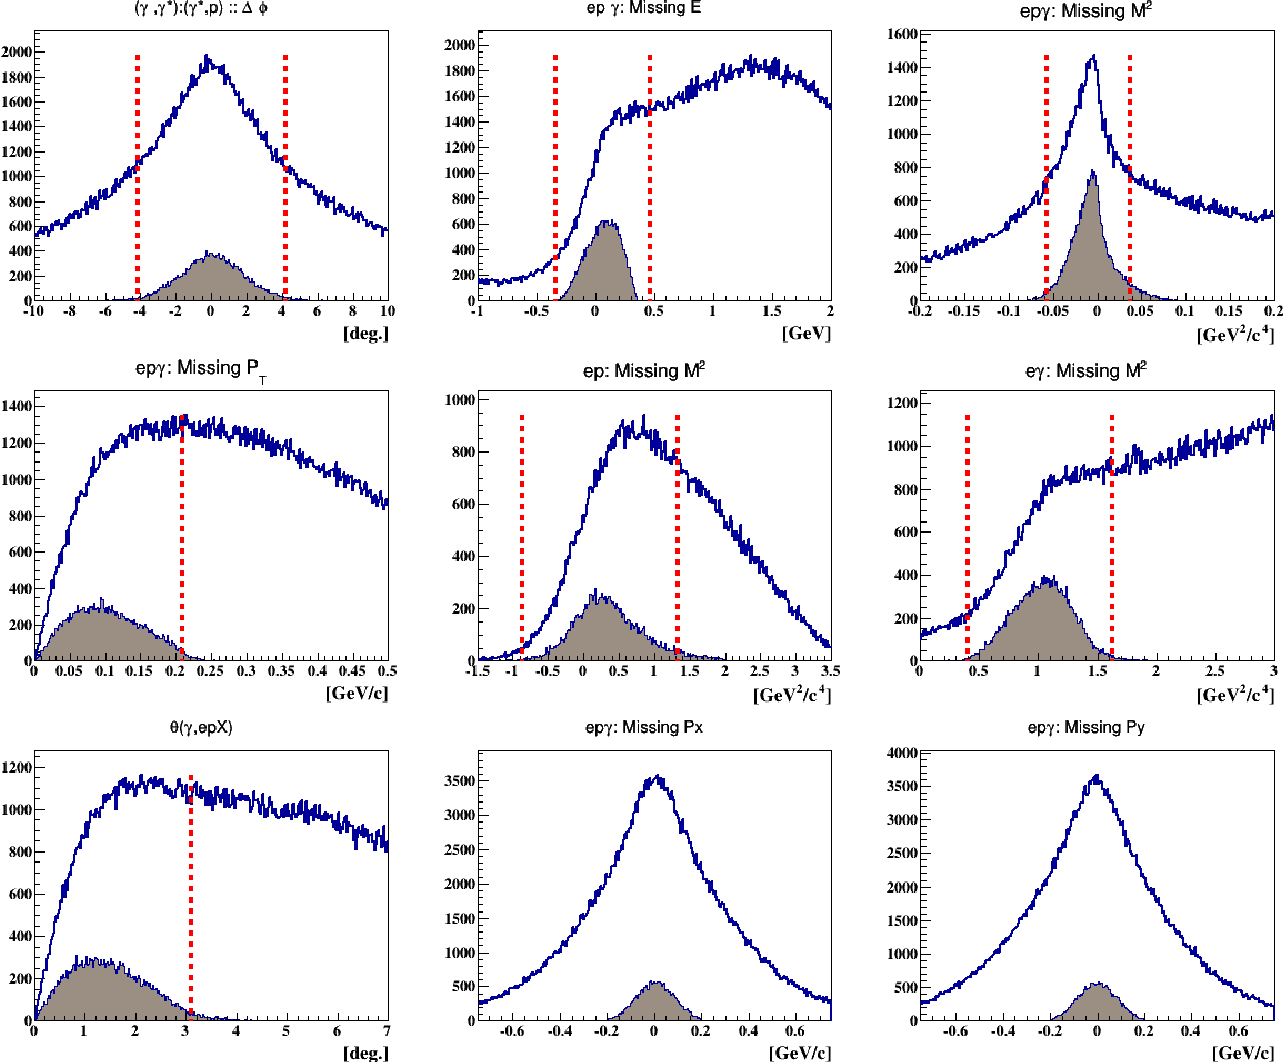 Figure 5.6: The incoherent DVCS exclusivity cuts. The blue distributions represent all the events with one good electron, one good proton, and at least one photon in the IC. The shaded brown distributions show the incoherent DVCS events which passed all the exclusivity cuts except the one on the quantity drawn. The distributions from left to right and from top to bottom are: the proton-photon coplanarity, the missing energy, missing mass squared, missing transverse momentum from epγX, the missing mass squared epX and the missing mass squared eγX, the angle between the missing particle in epX and the measured photon, the missing Px and Py in epγX. The vertical red lines represent 3σ cuts. The mean and sigma values of each shaded distribution are listed in table E.3.